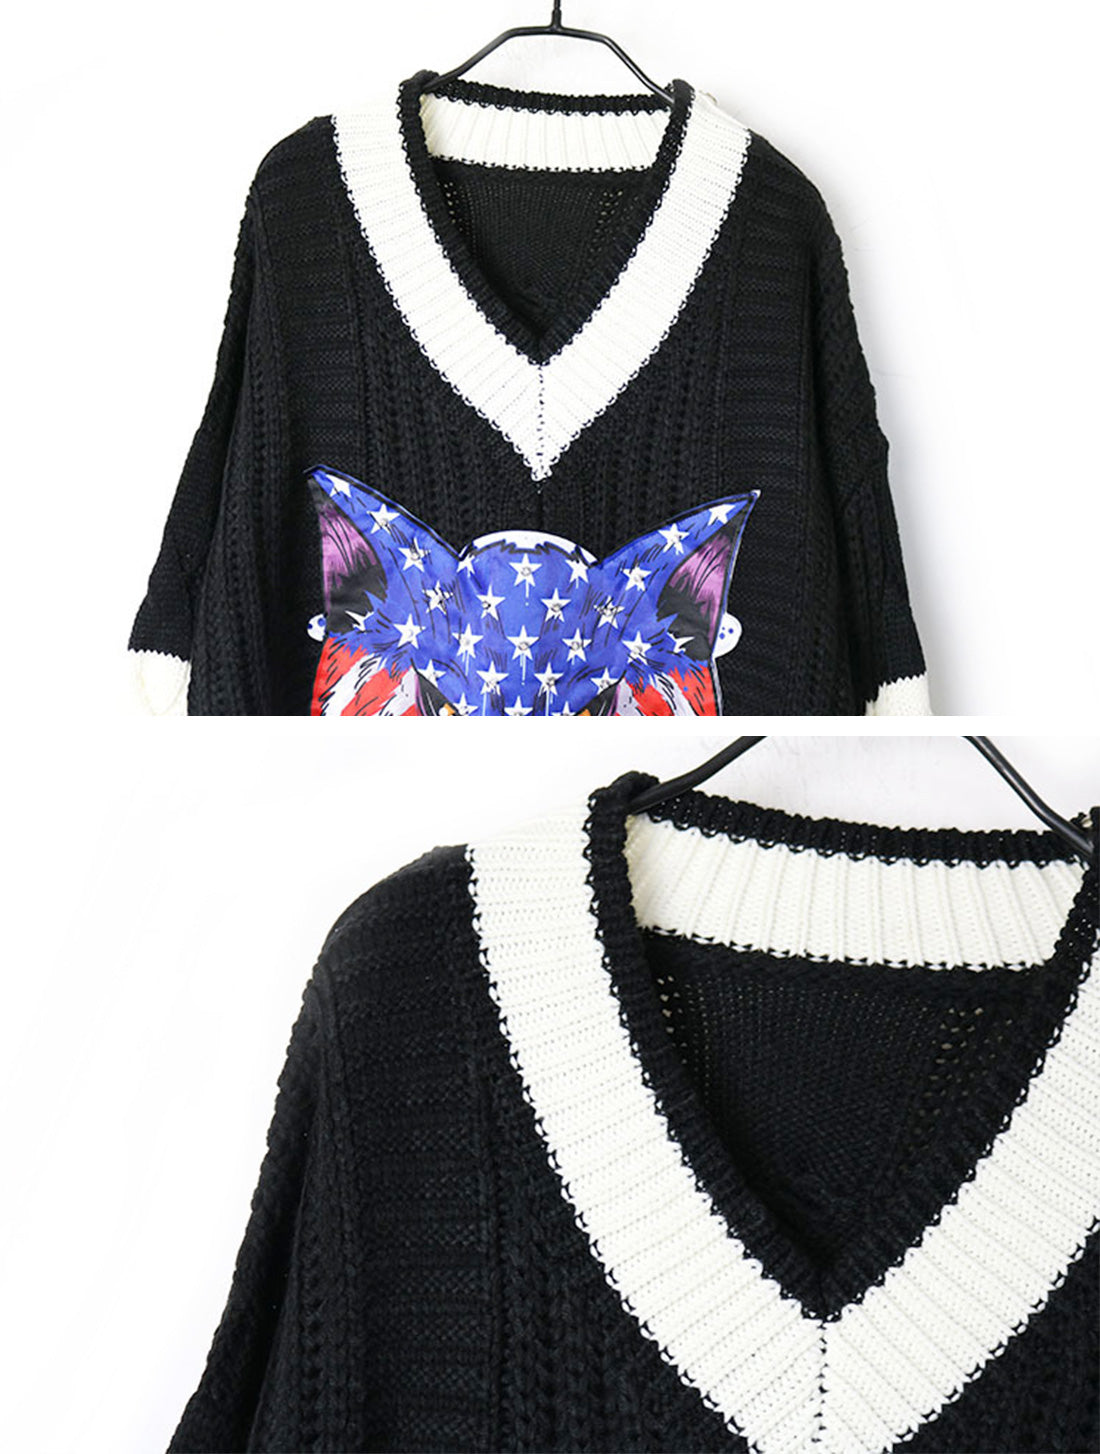 Thunder The Angry Face Sweater Top Details 1